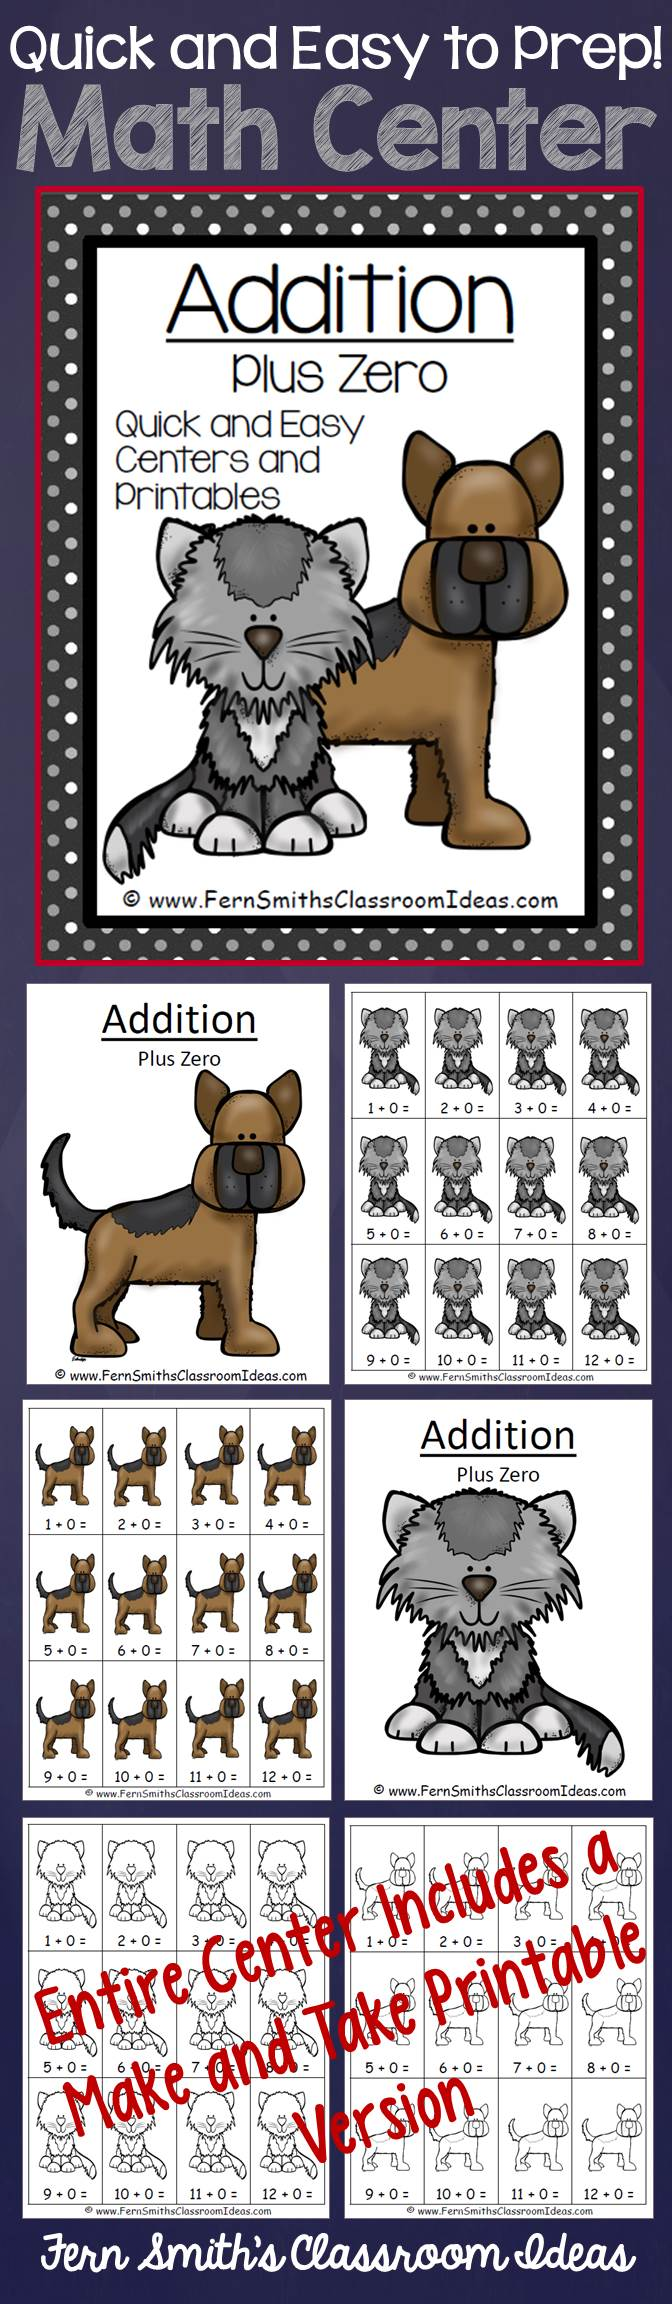 Addition Plus Zero - Quick and Easy Kittens and Puppies Centers and Printables #TPT $paid